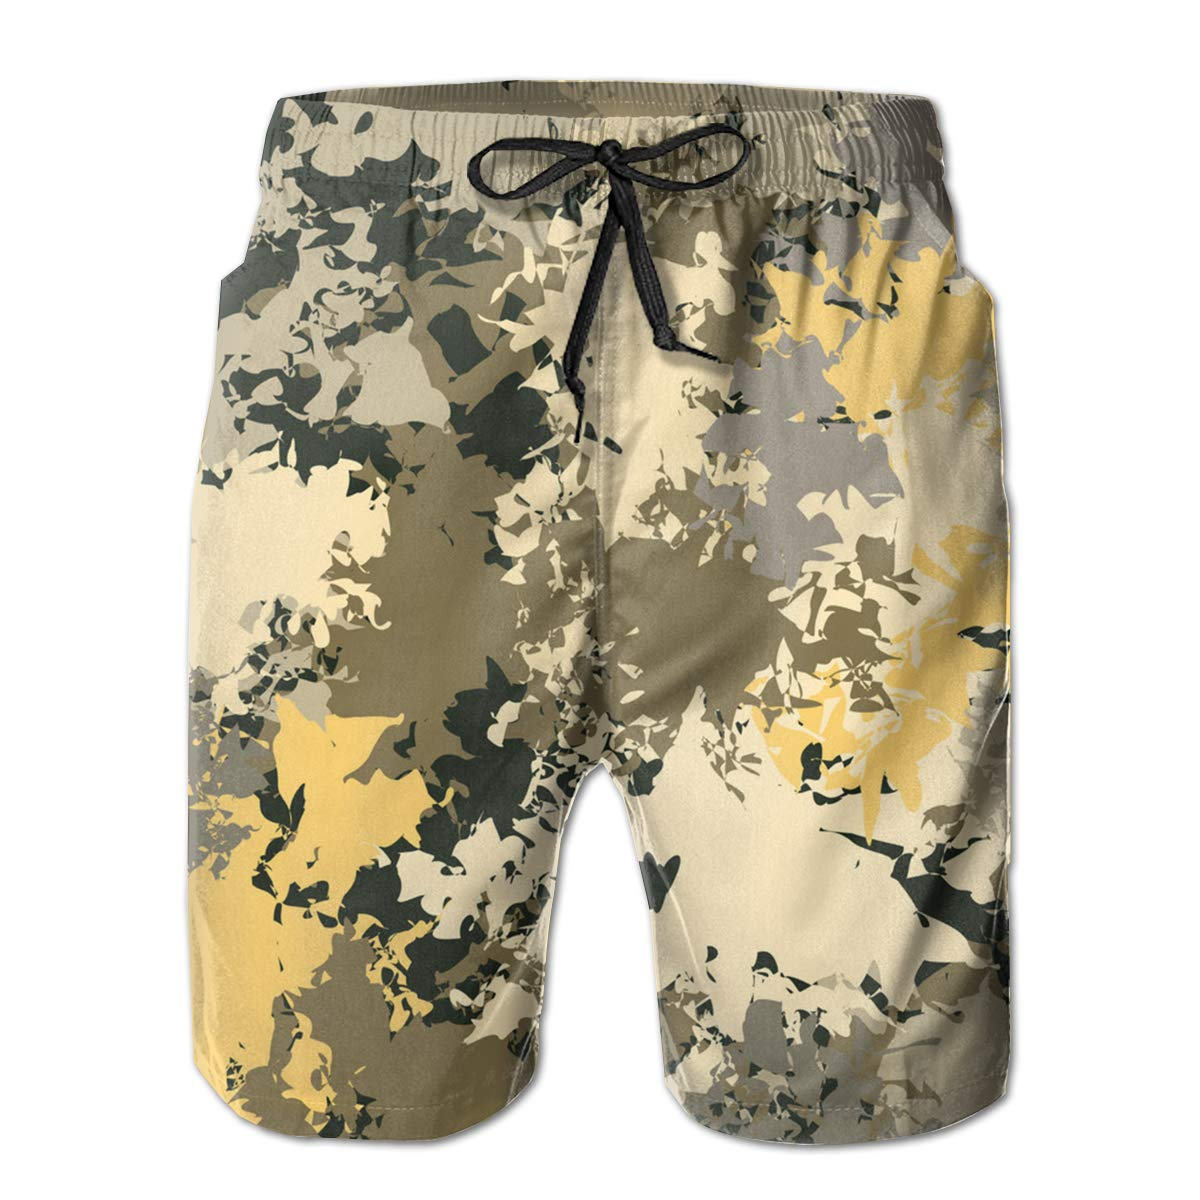 APPCLL Fashion Swim Trunks Mens Board Shorts Camo Paint Yellow and Brown Quick Dry Shorts